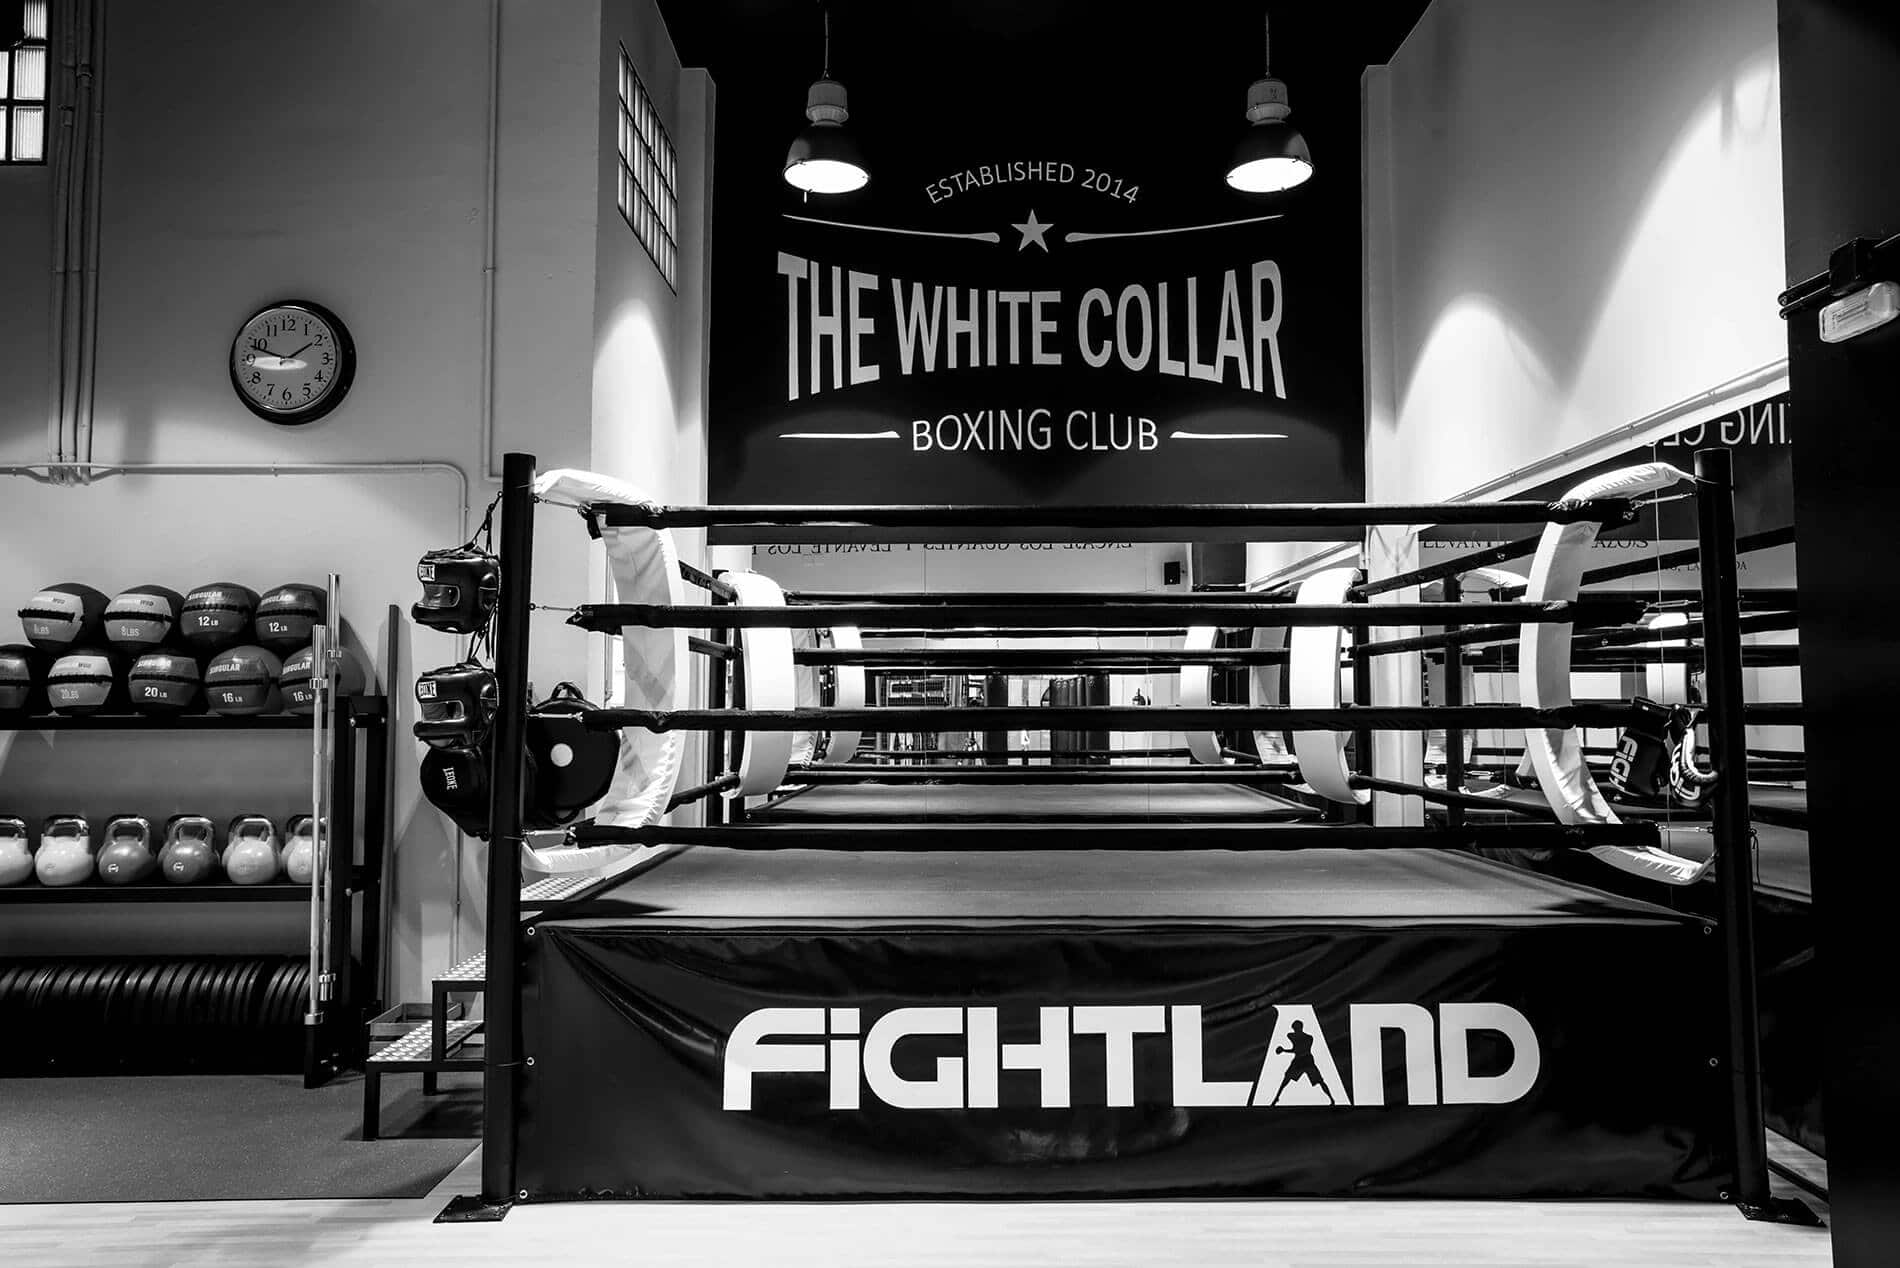 Fightland - Club Boxeo -  Chamberí